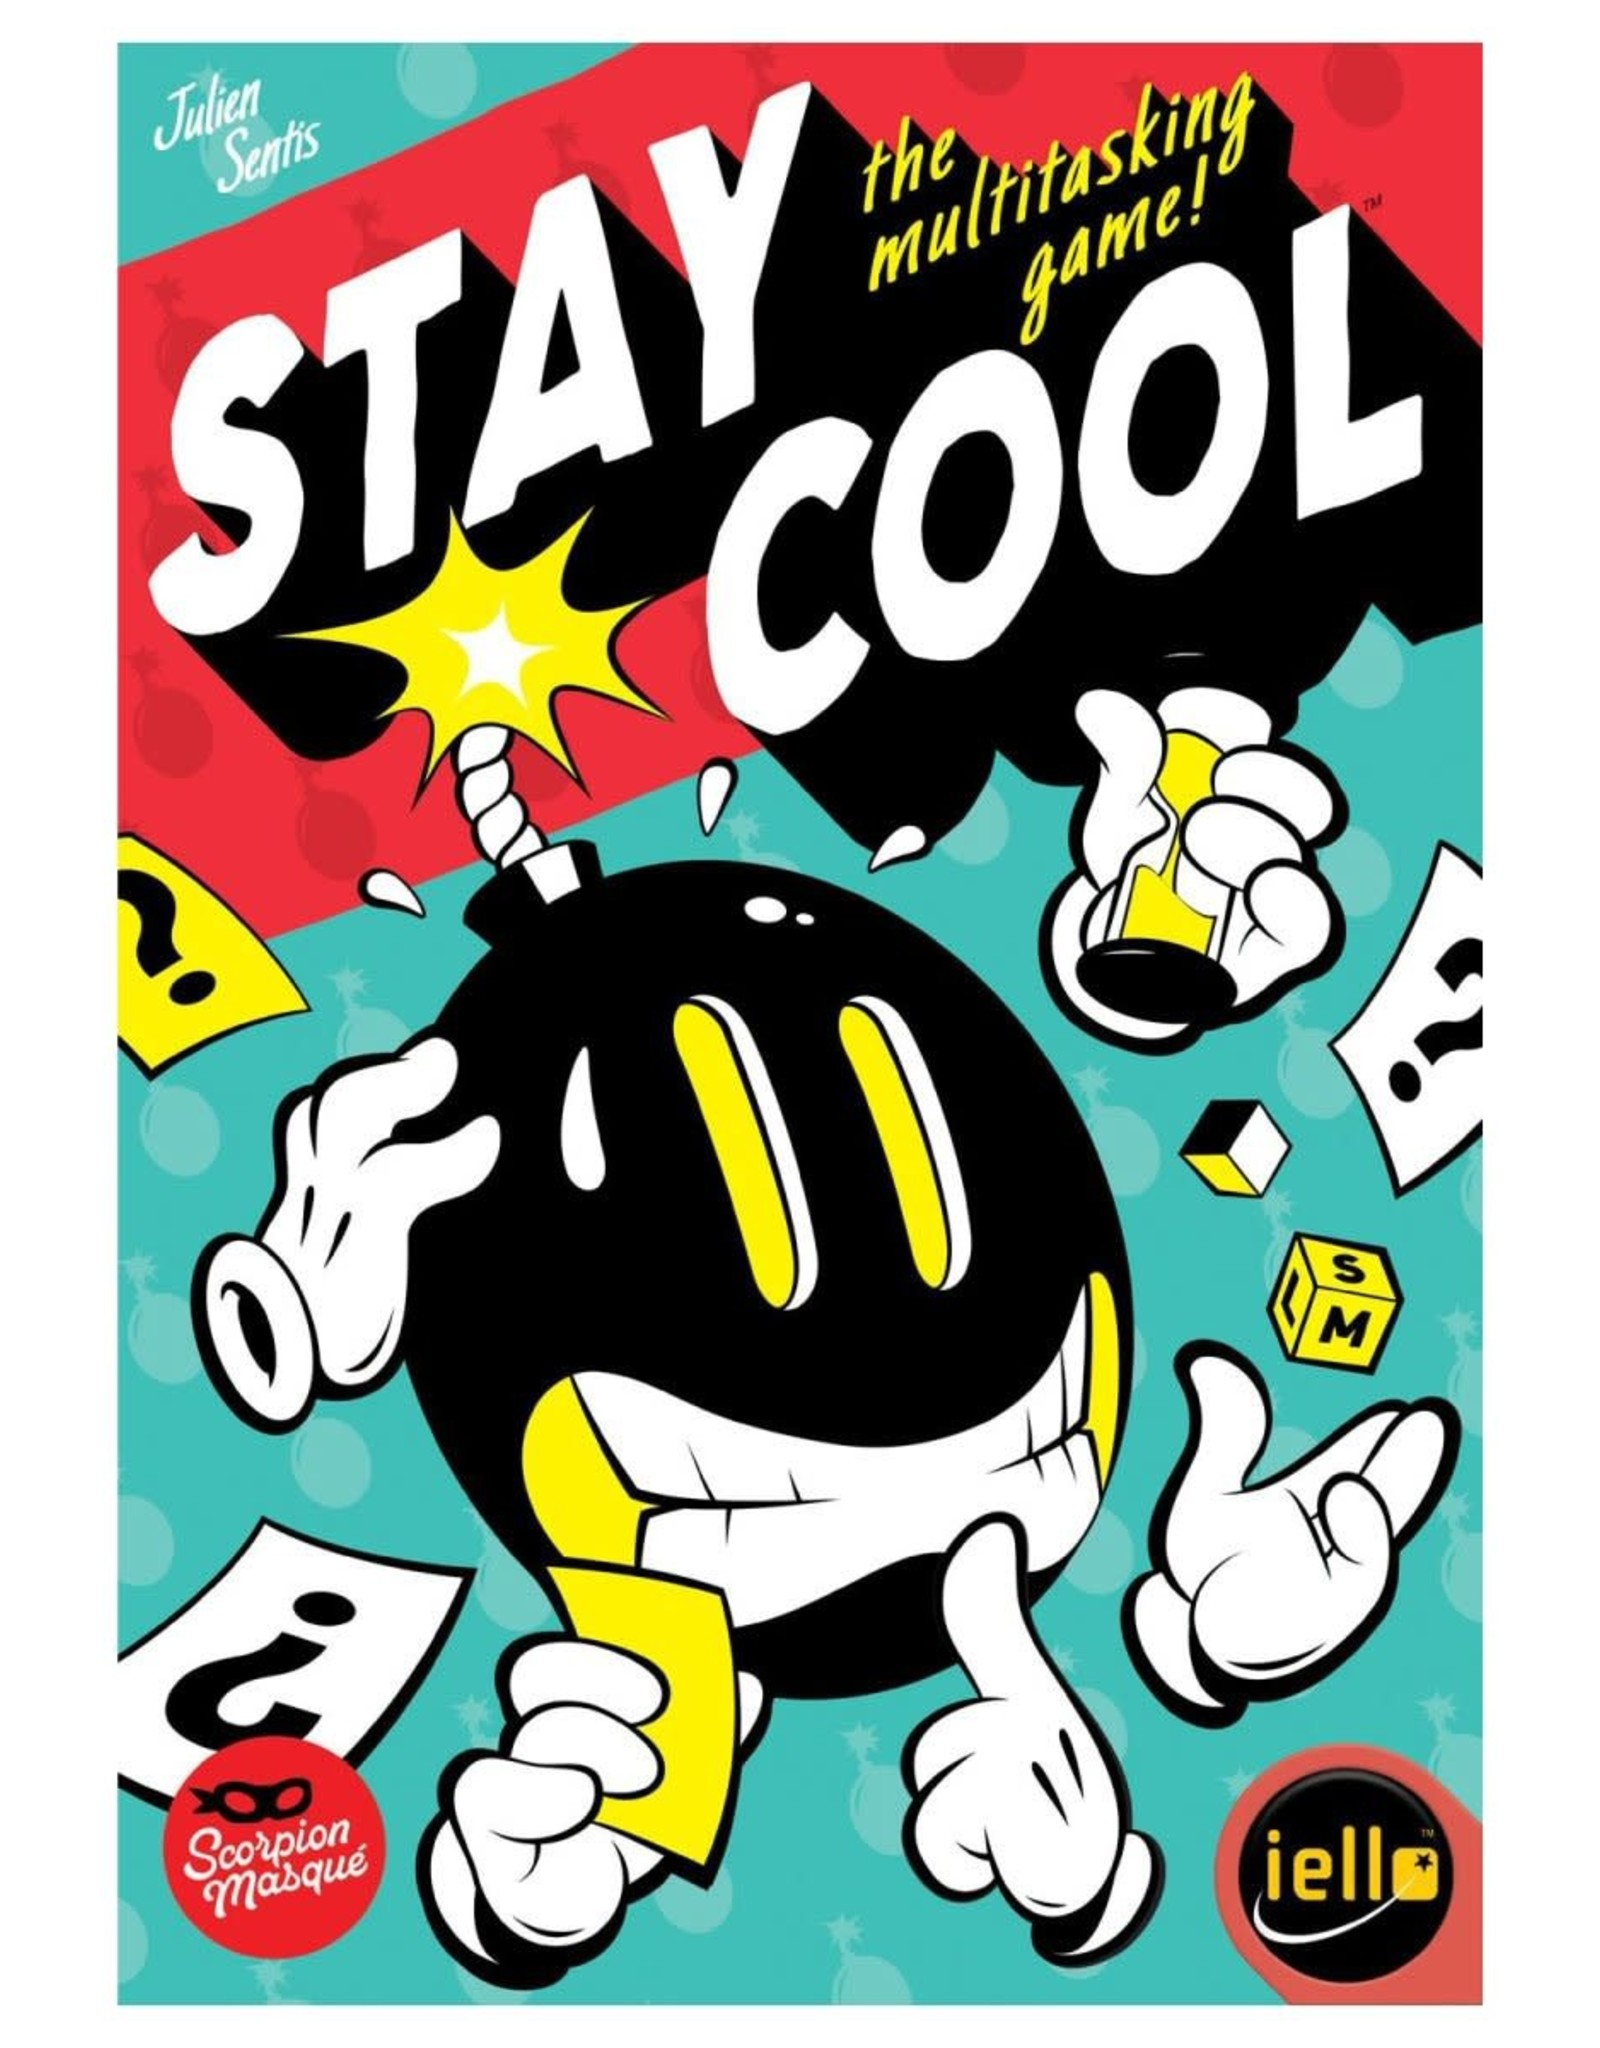 Stay Cool! The Multitasking Game